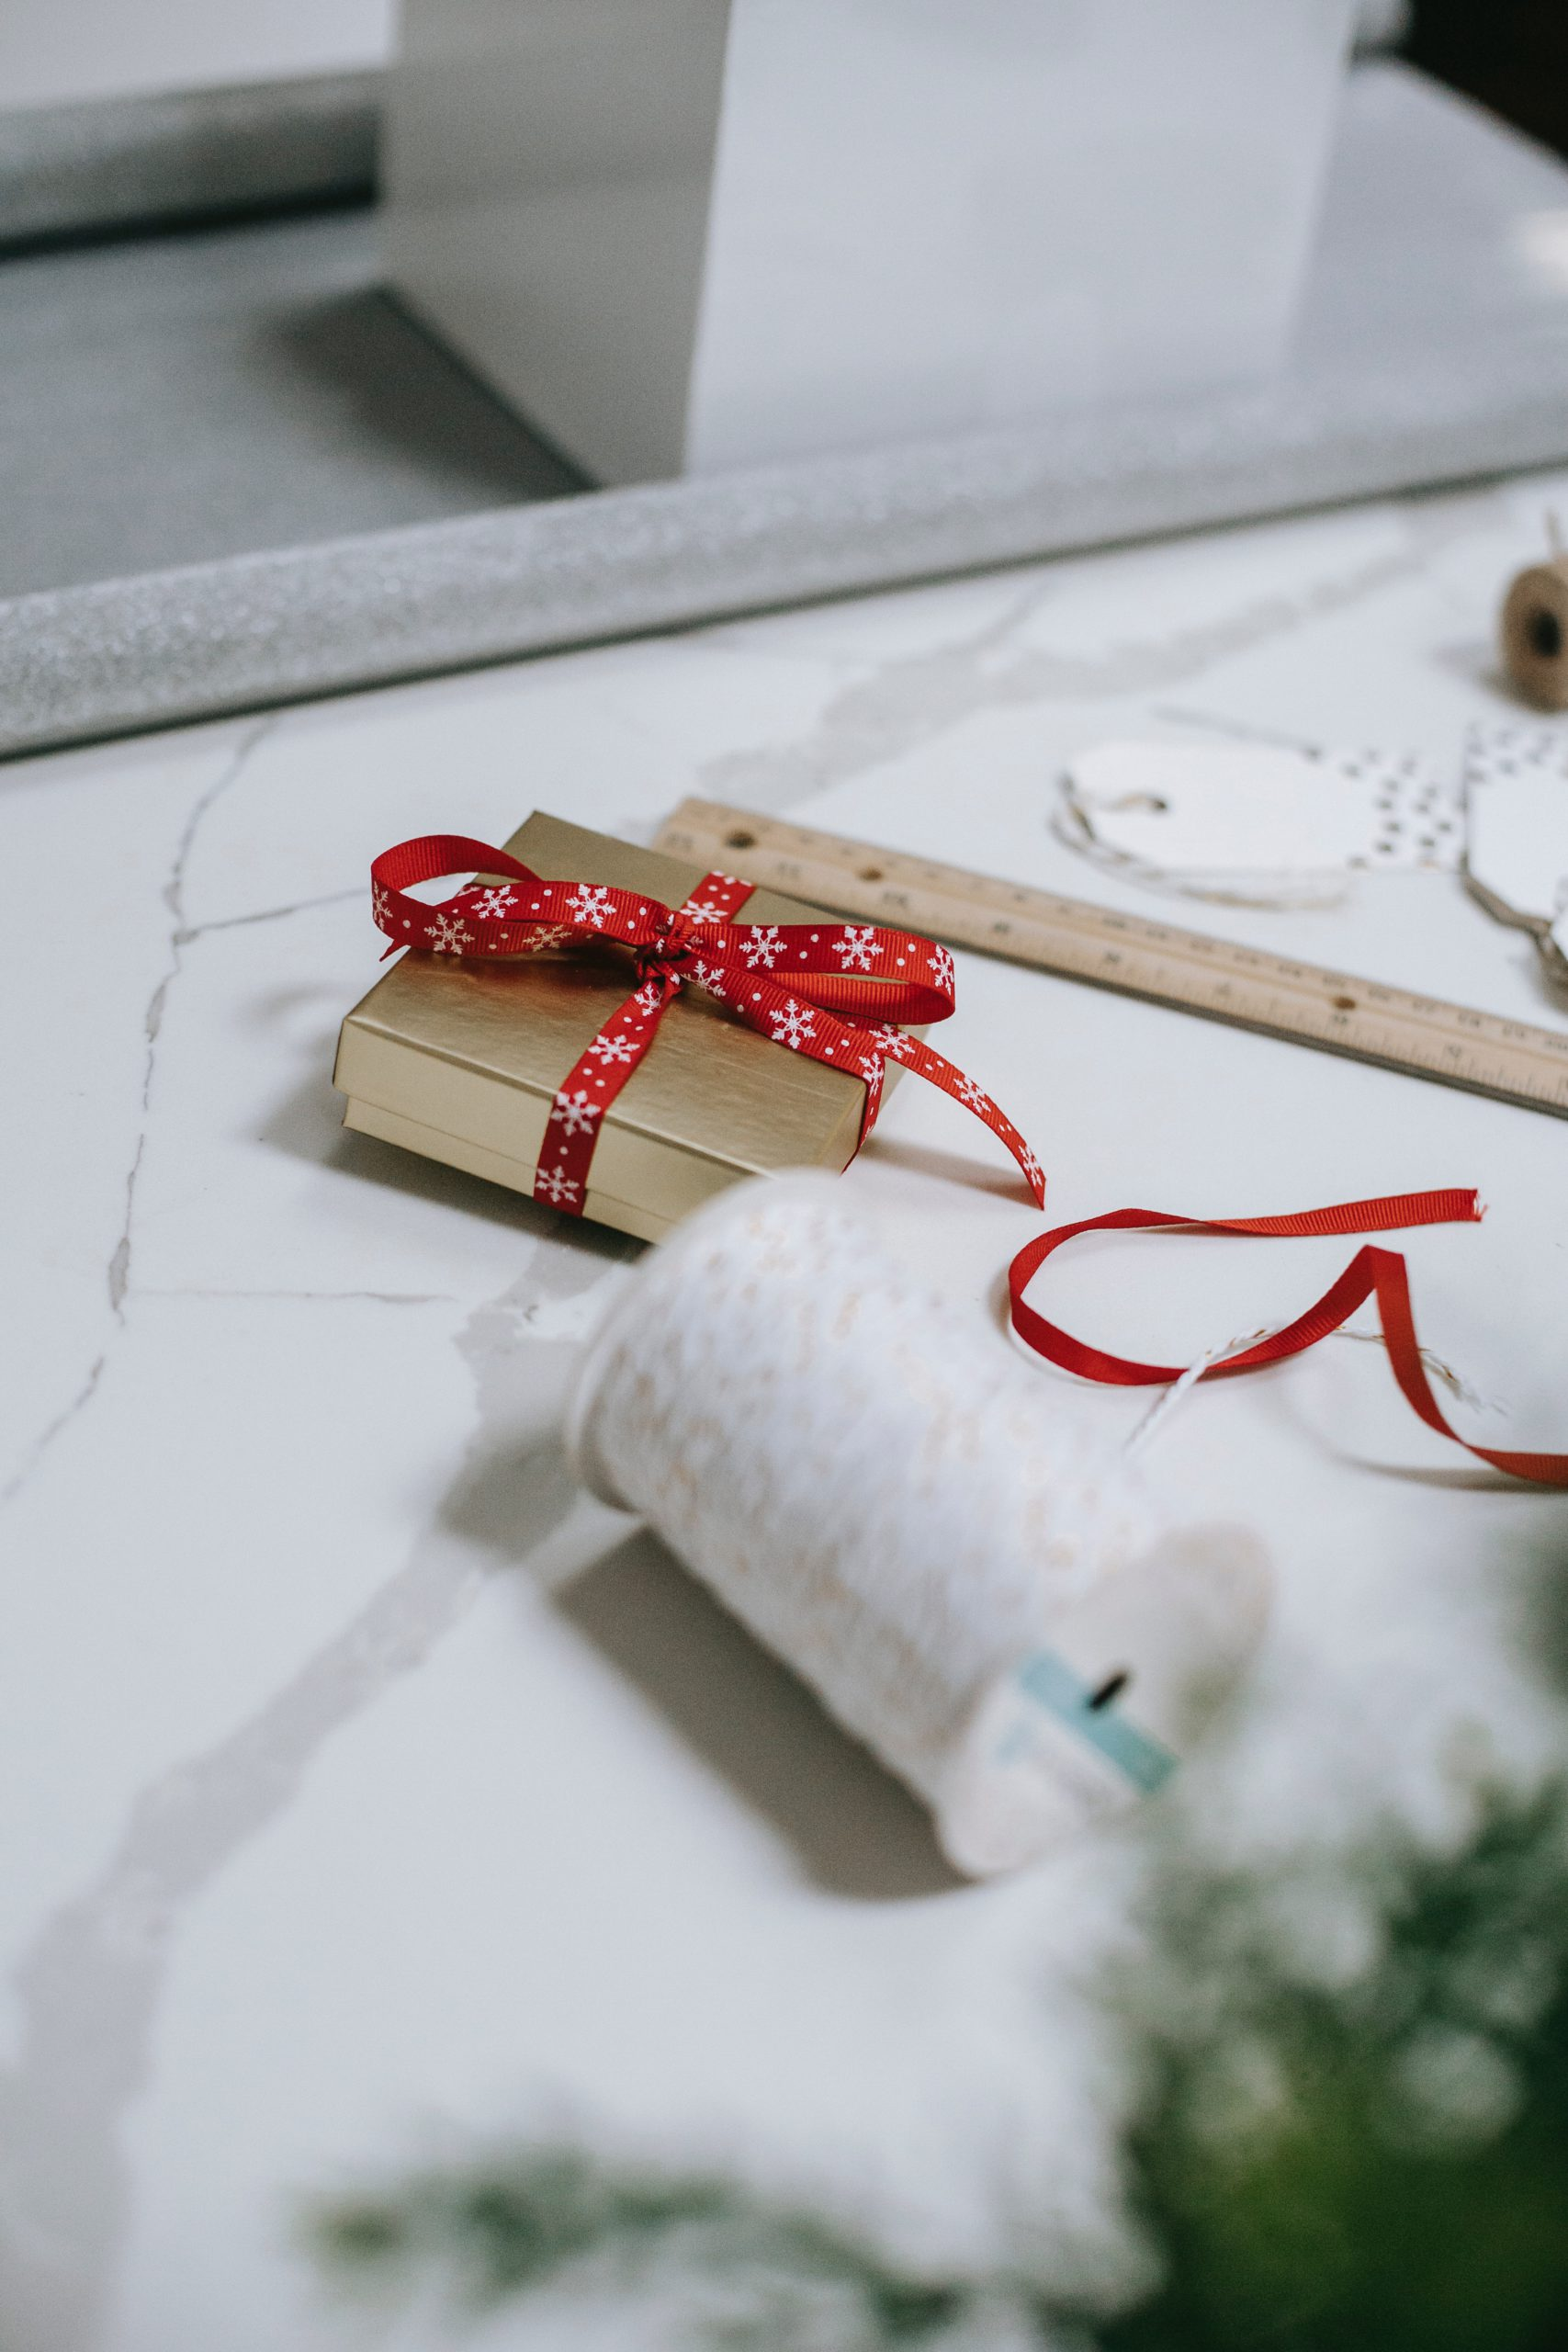 Holidays at work: How to celebrate in an inclusive way